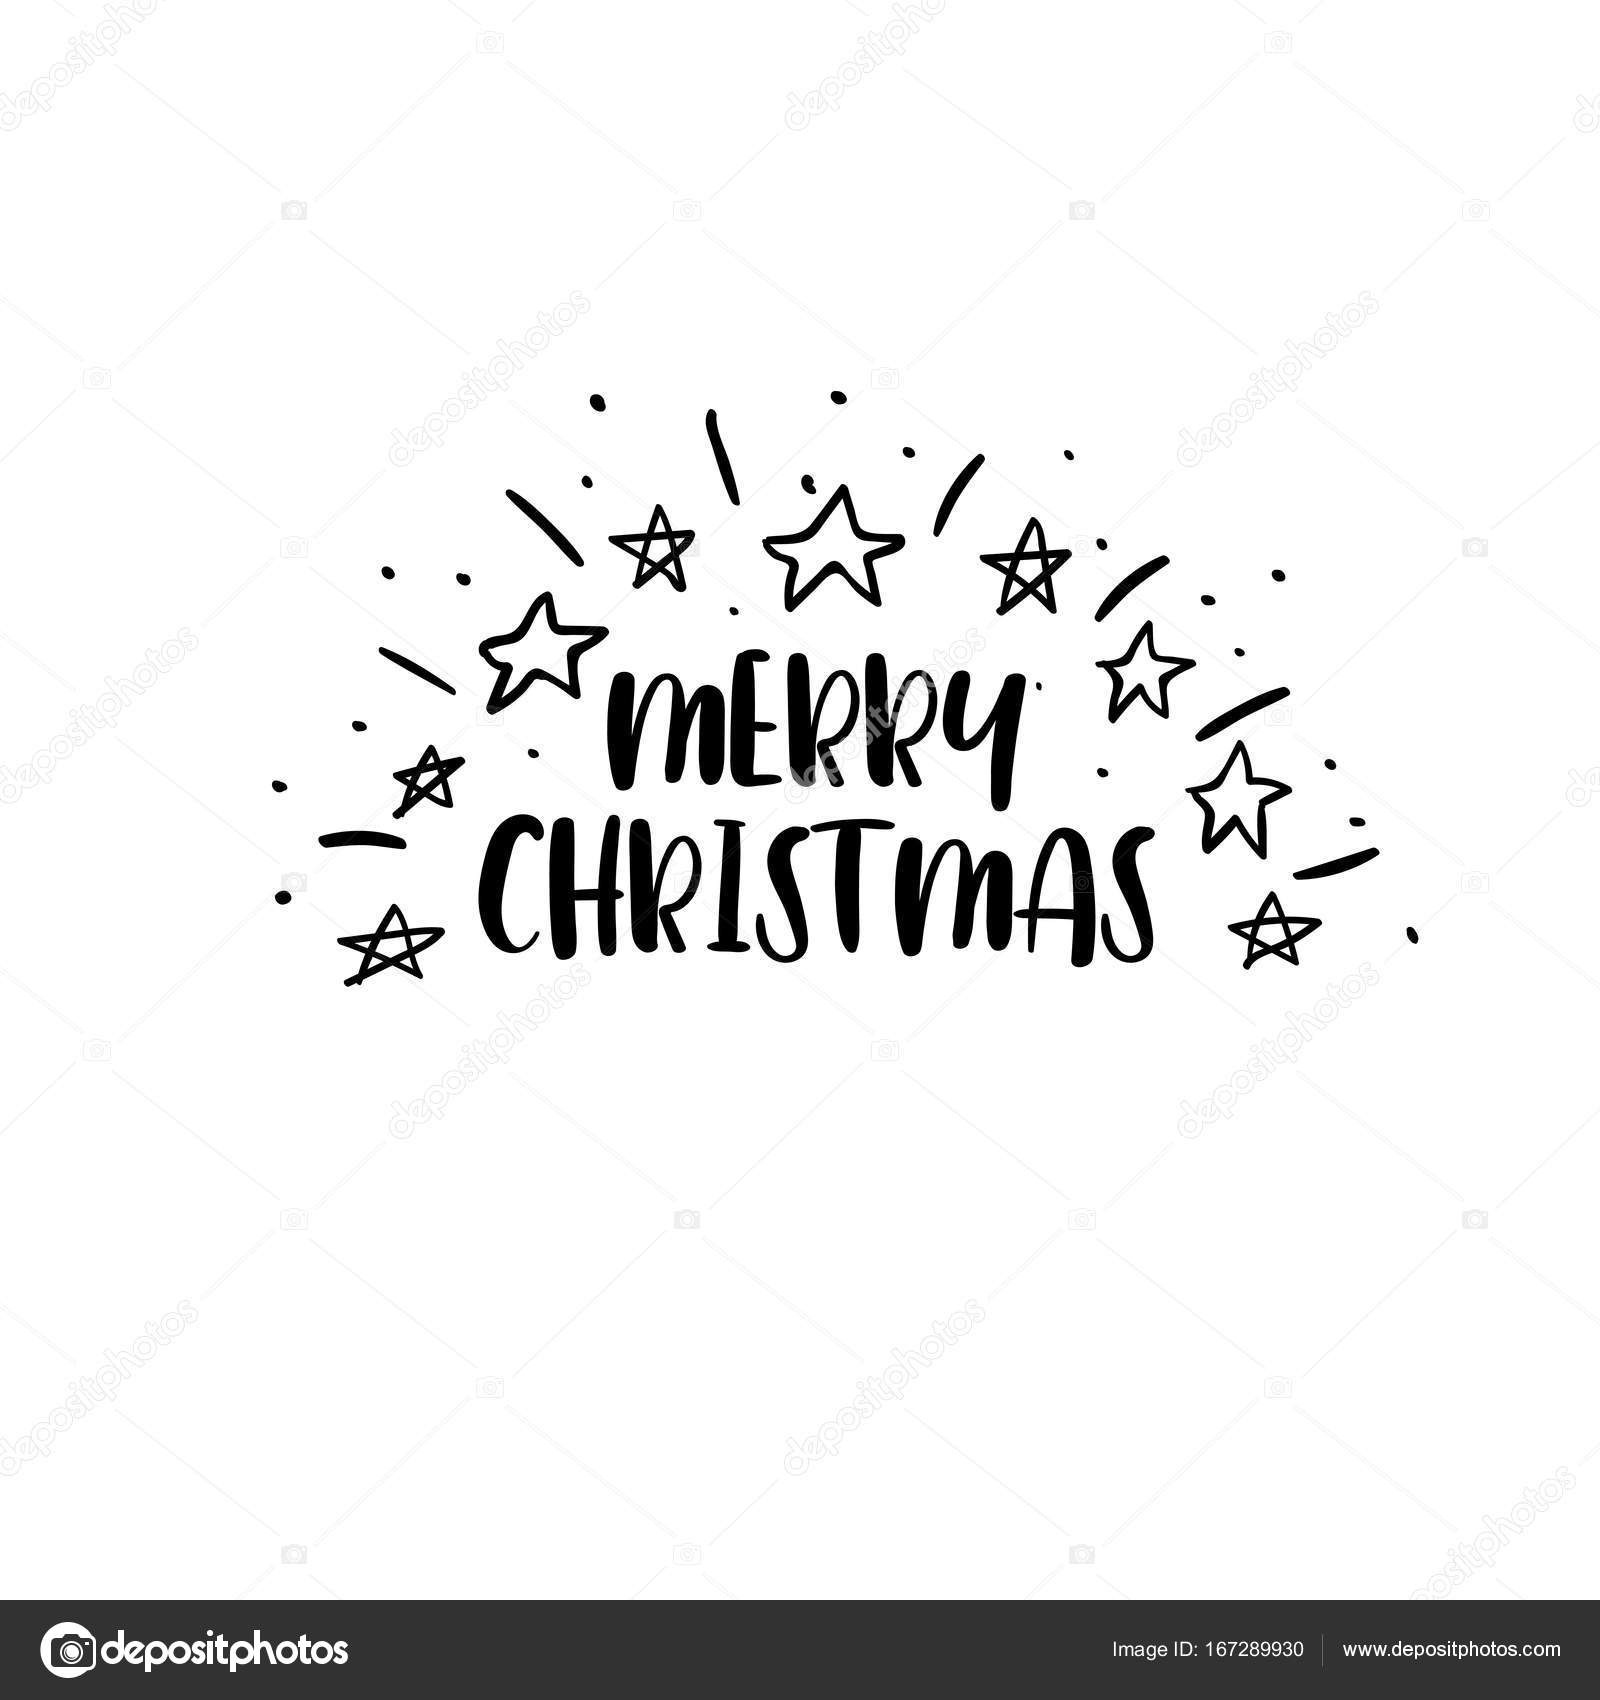 Merry Christmas Calligraphy.Merry Christmas Handwritten Inscription Hand Lettering